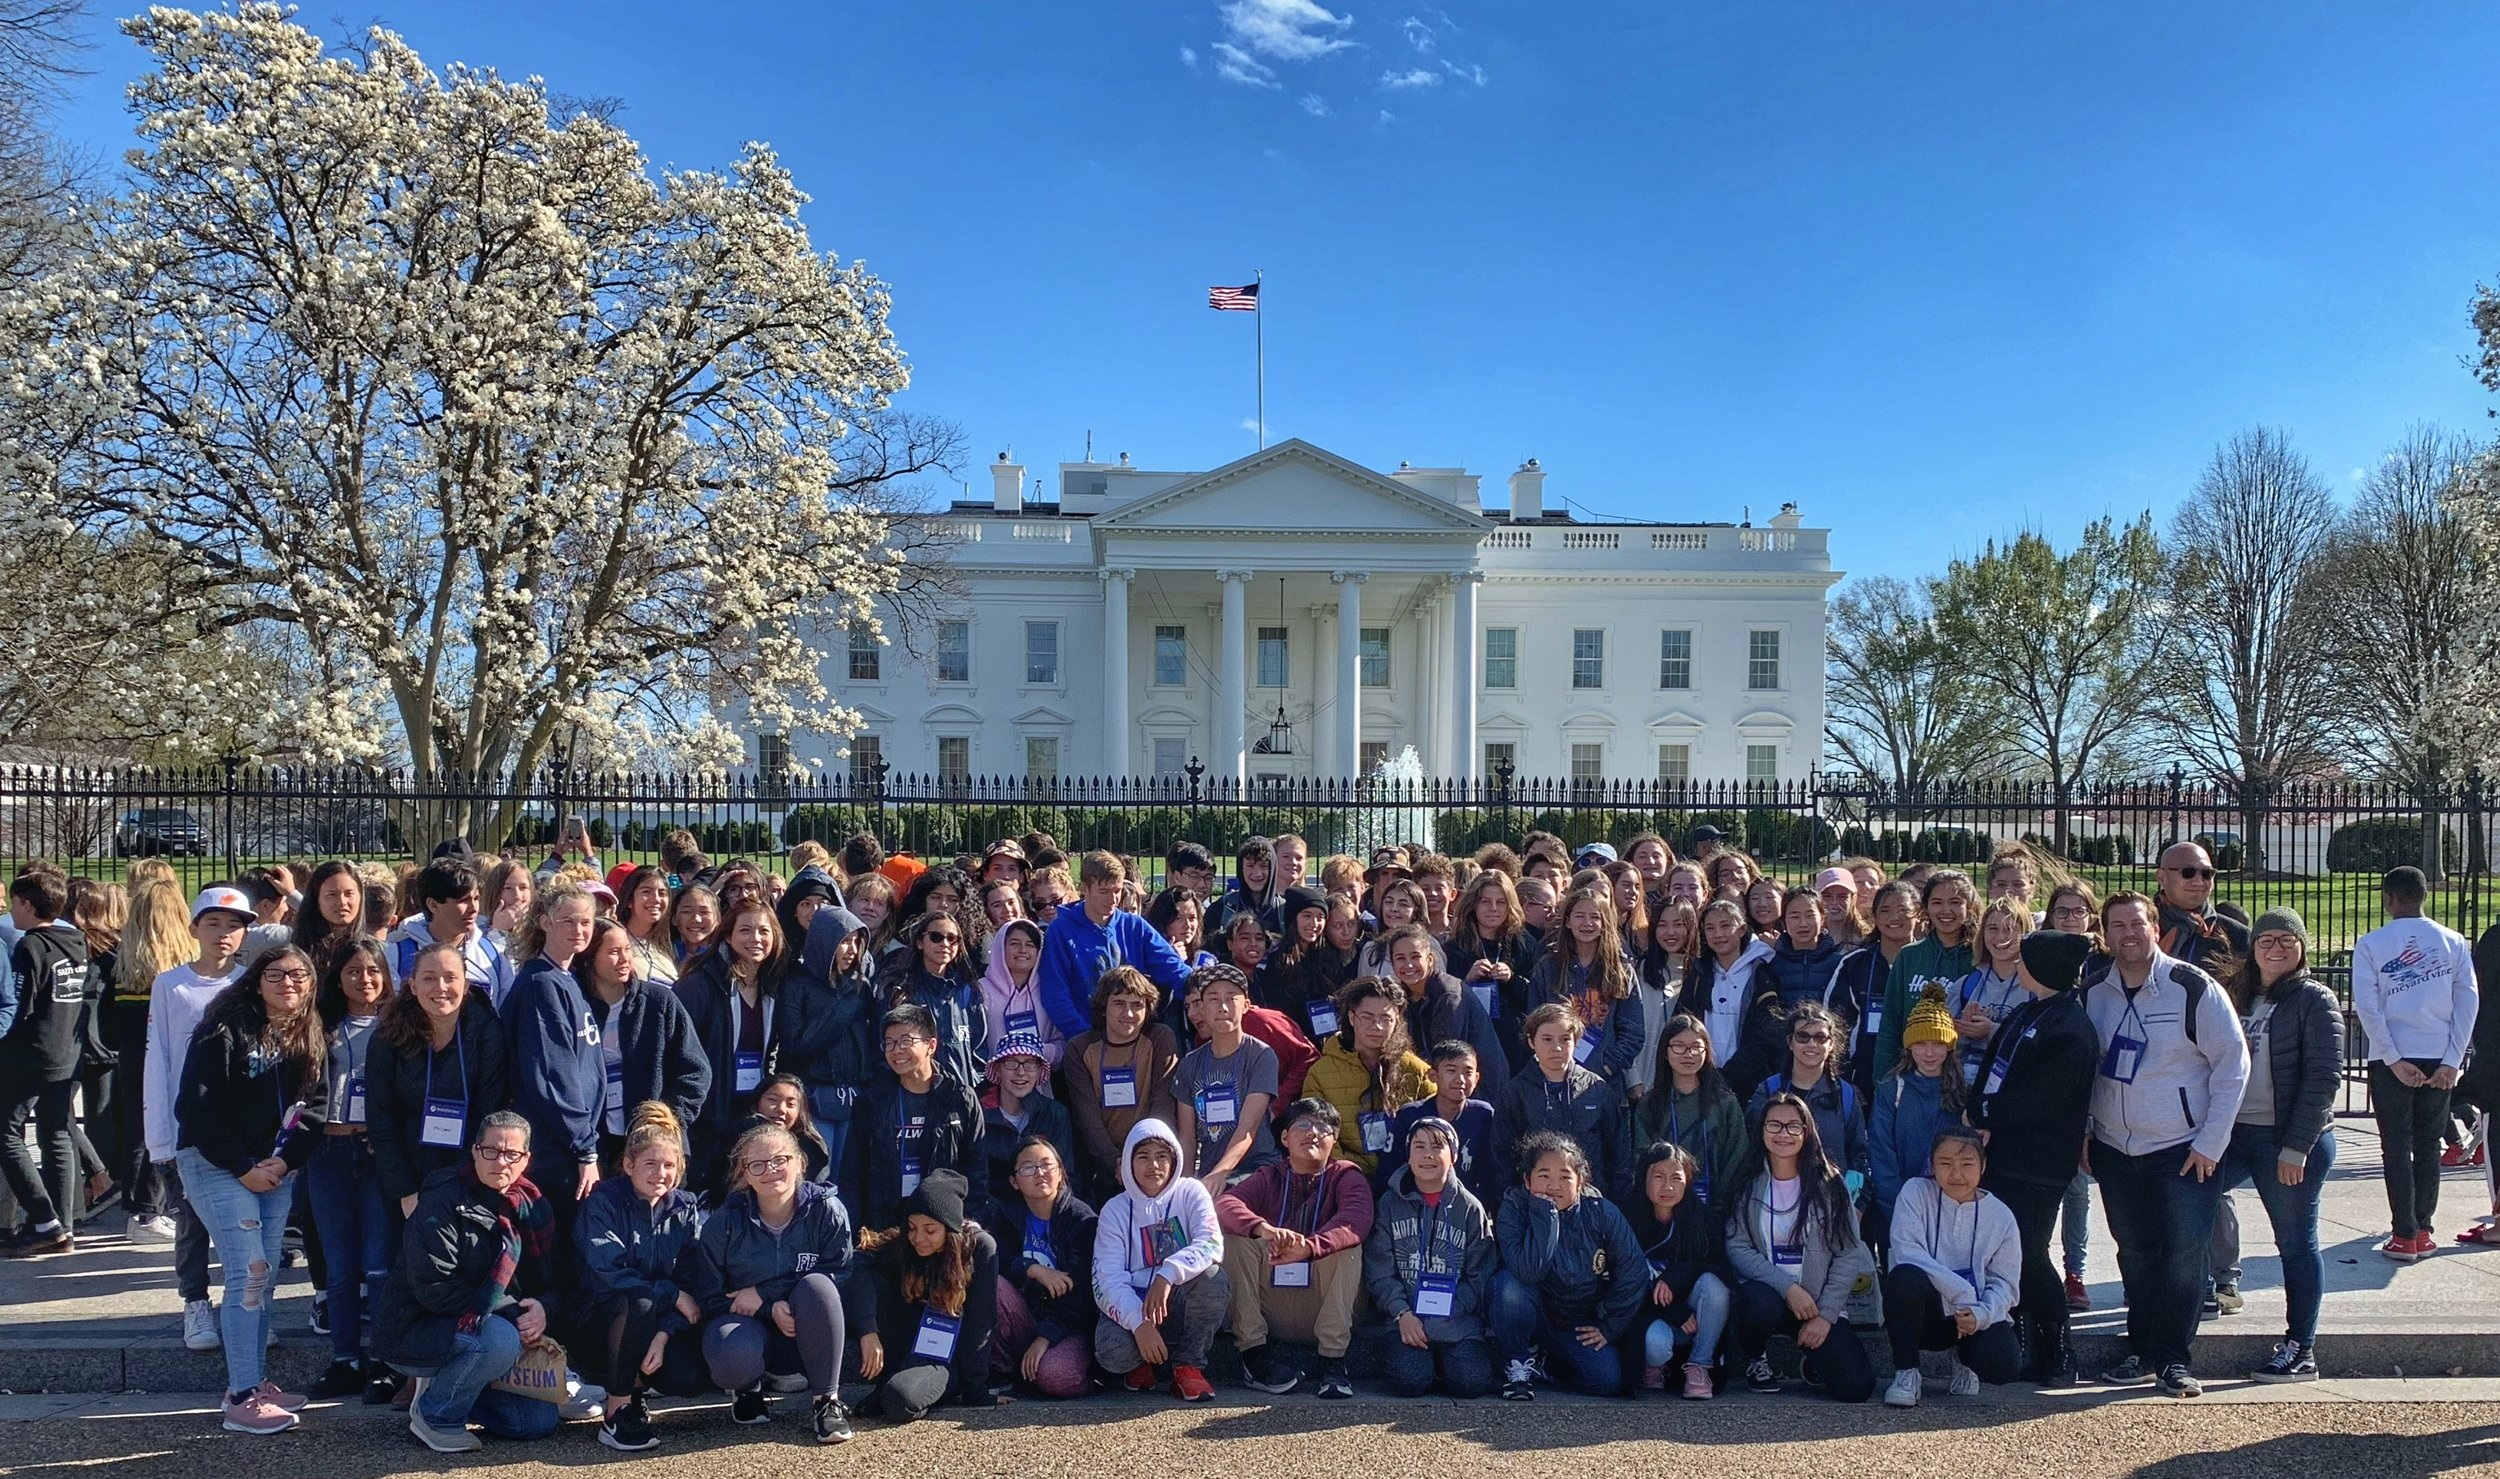 All the eighth graders at the White House!